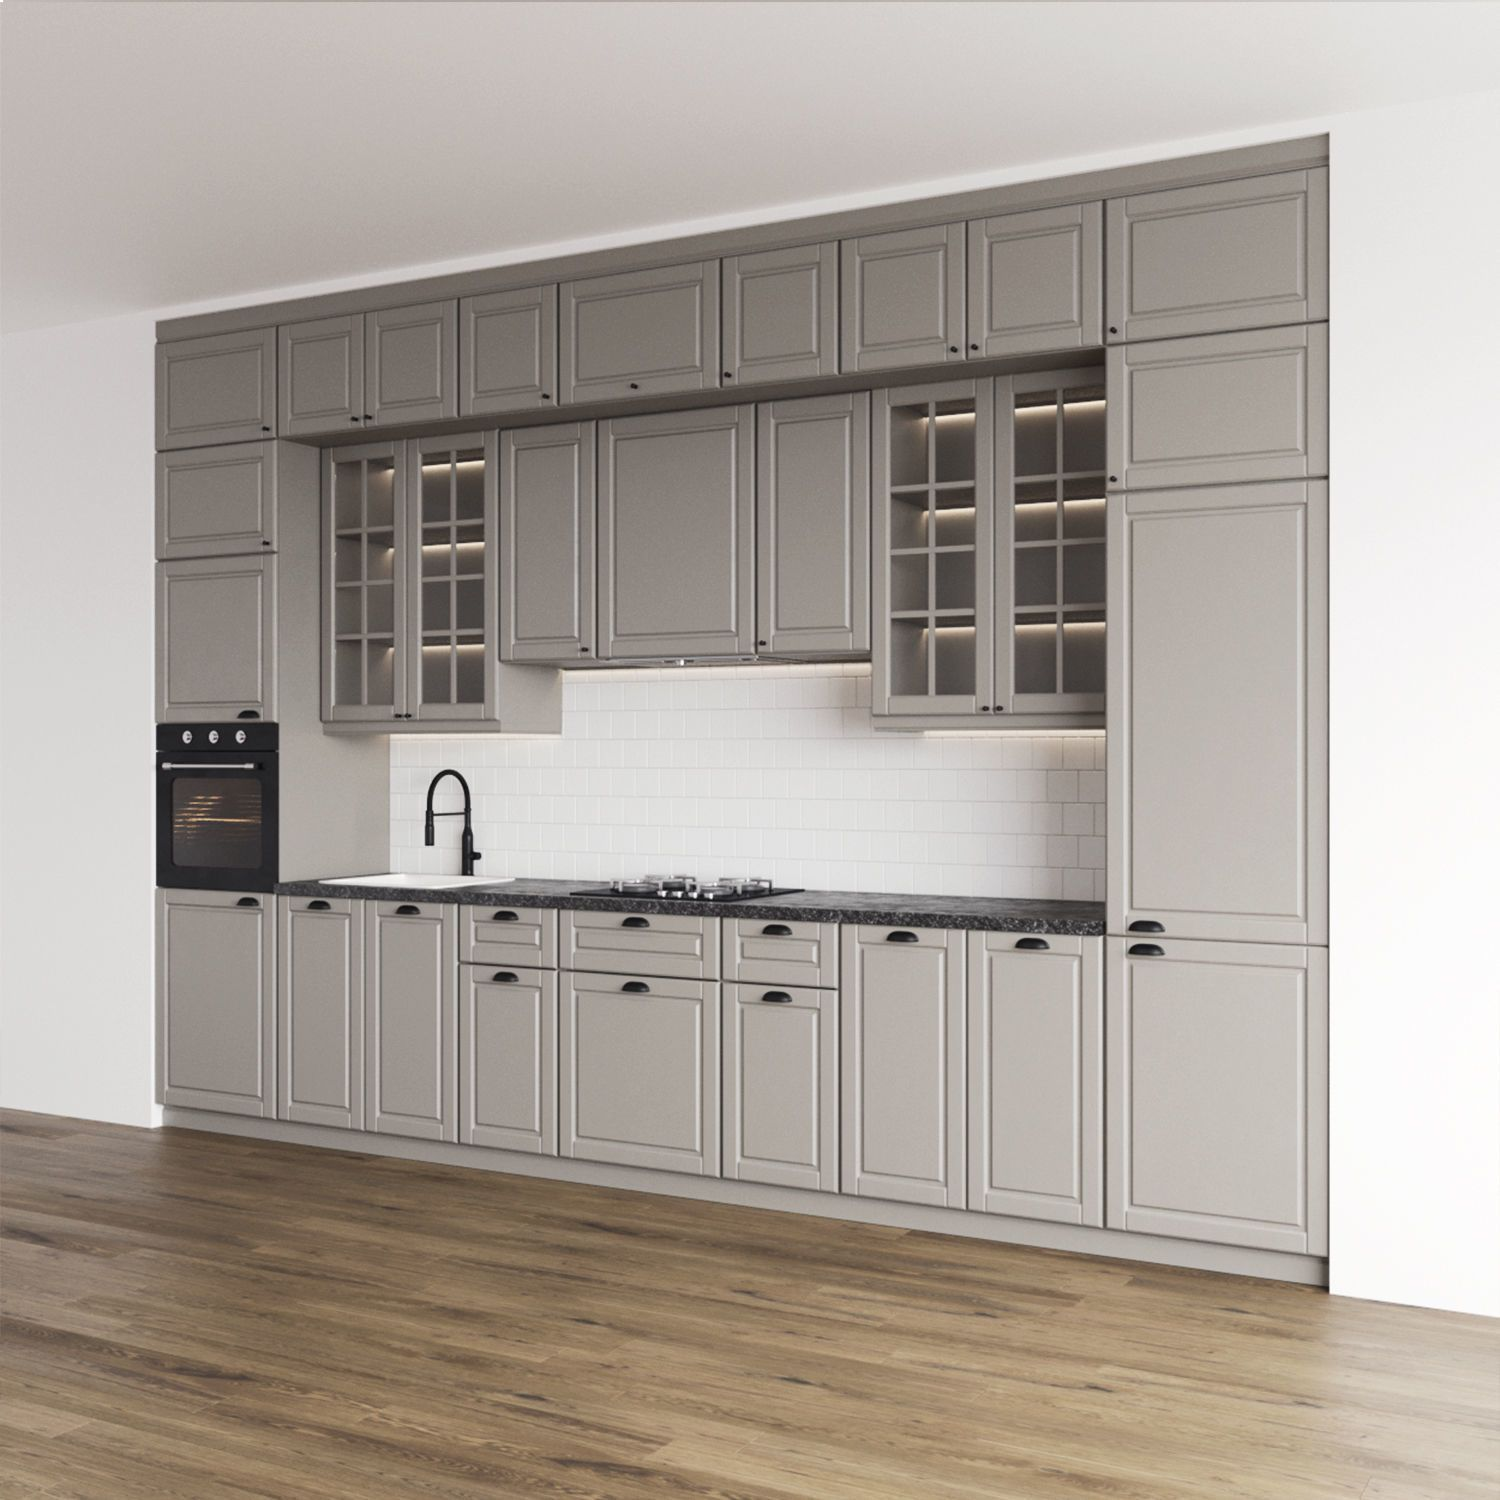 Modern Kitchenbodbyn 3d Model In 2020 Ikea Bodbyn Kitchen Bodbyn Kitchen Grey Ikea Kitchen Cabinets